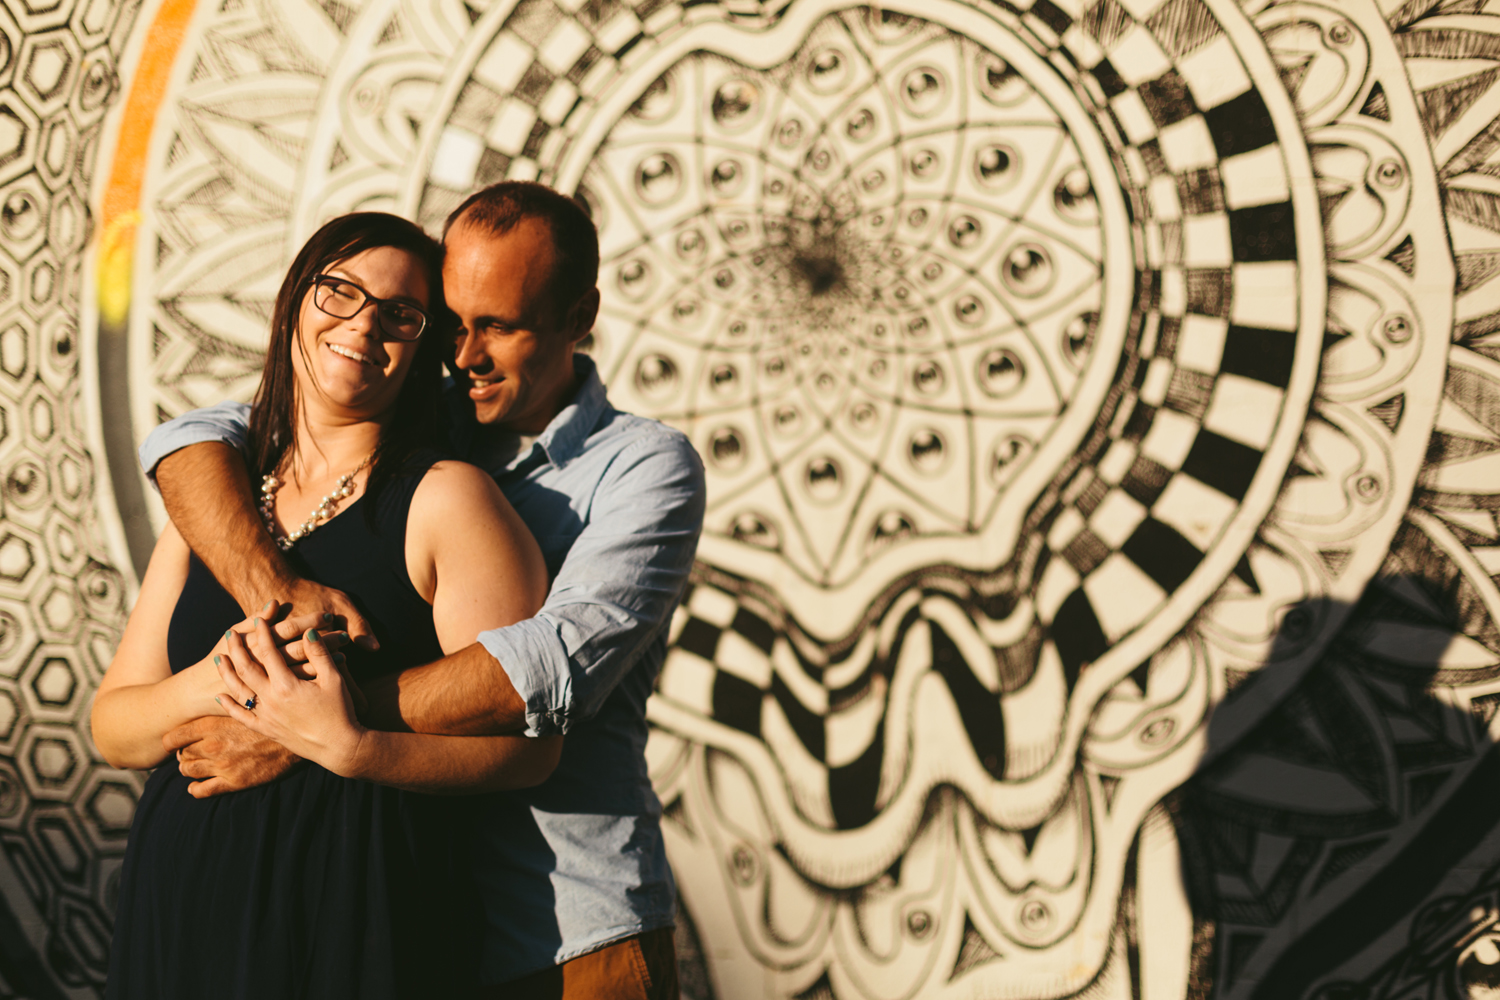 Jillian VanZytveld Photography Denver Colorado Engagement Portraits 61.jpg